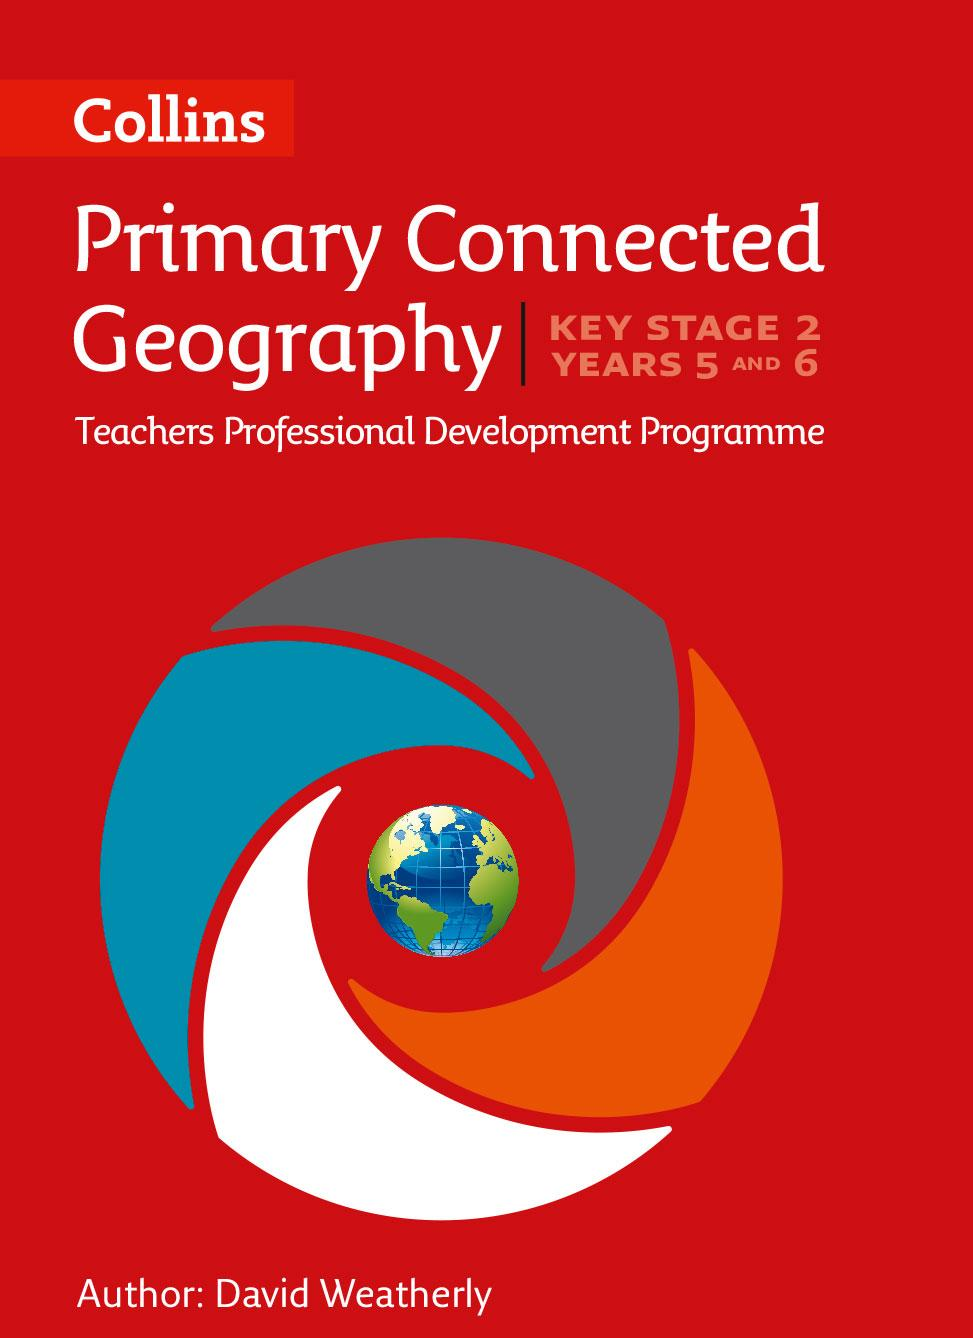 Many pupils in primary education today will live to see the next century and the content and approach to learning adopted in the Connected Geography programme recognises this.